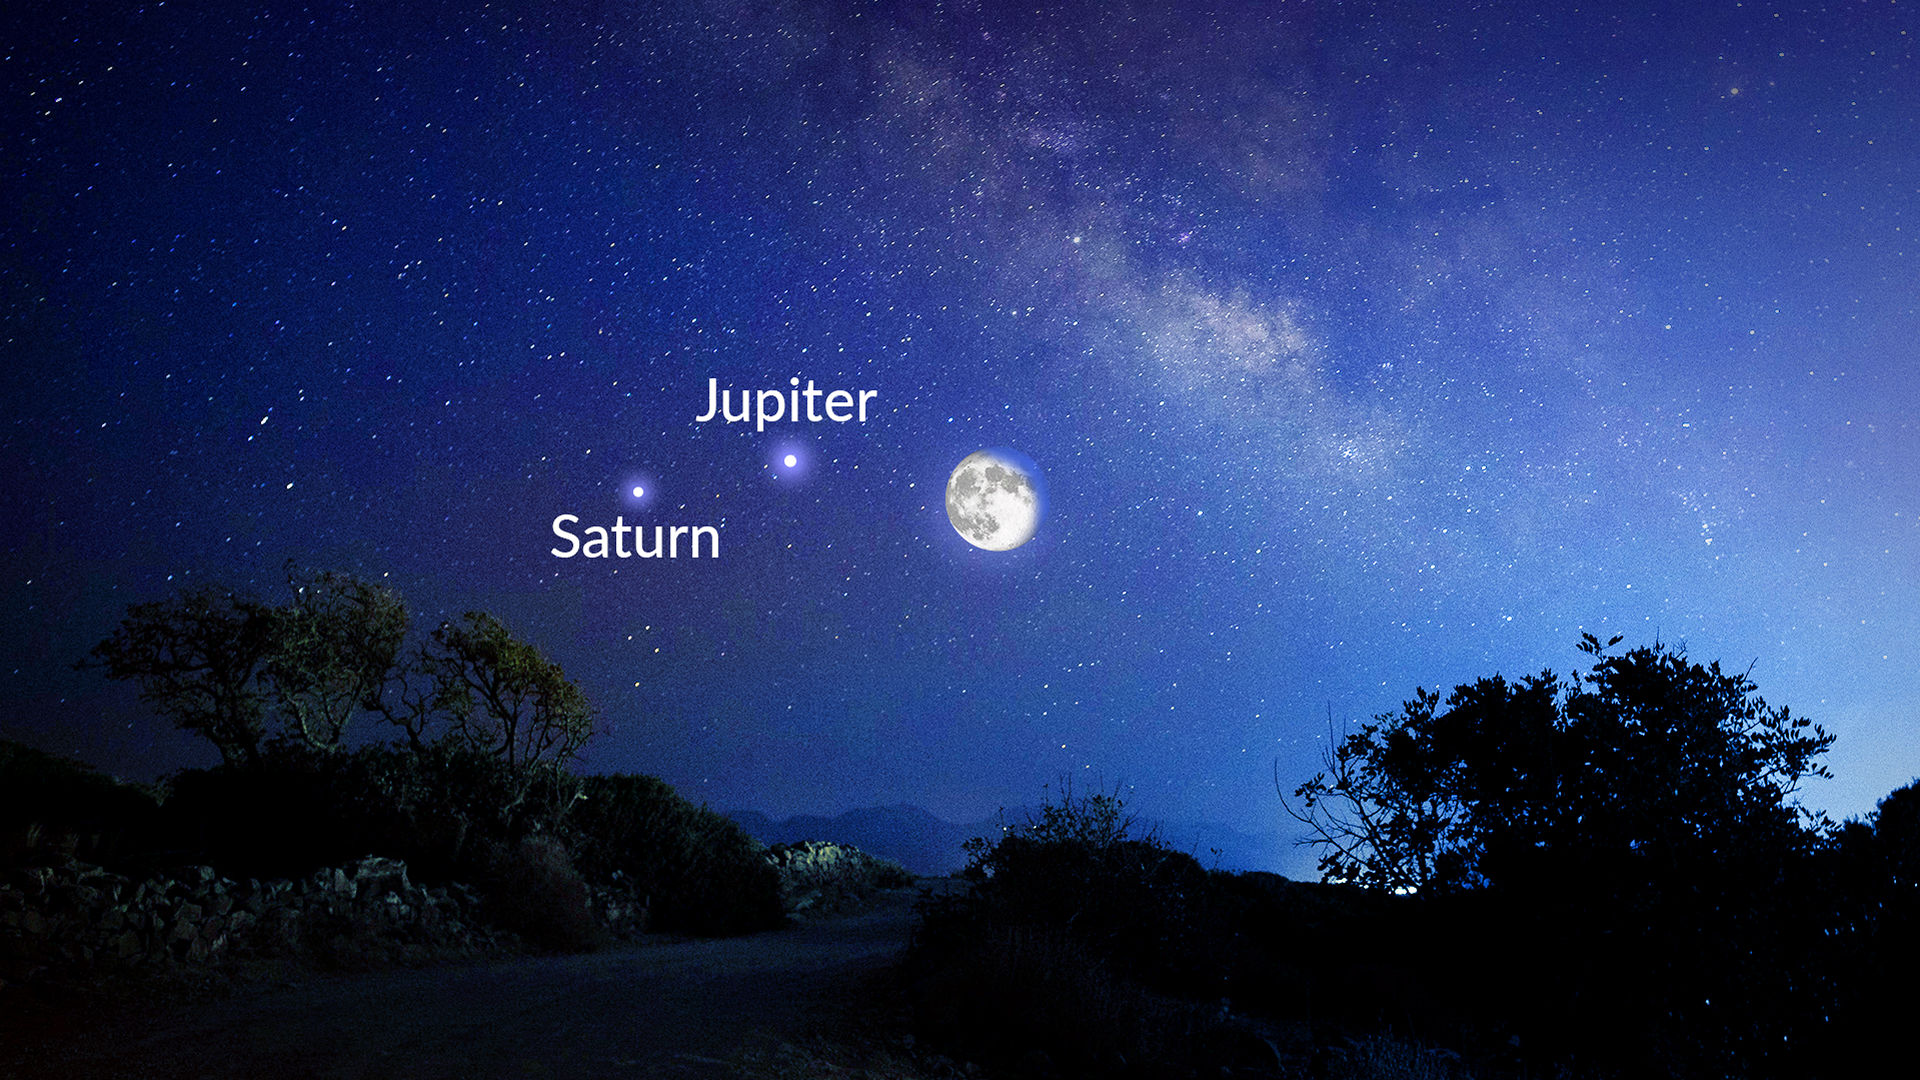 Star Jupiters